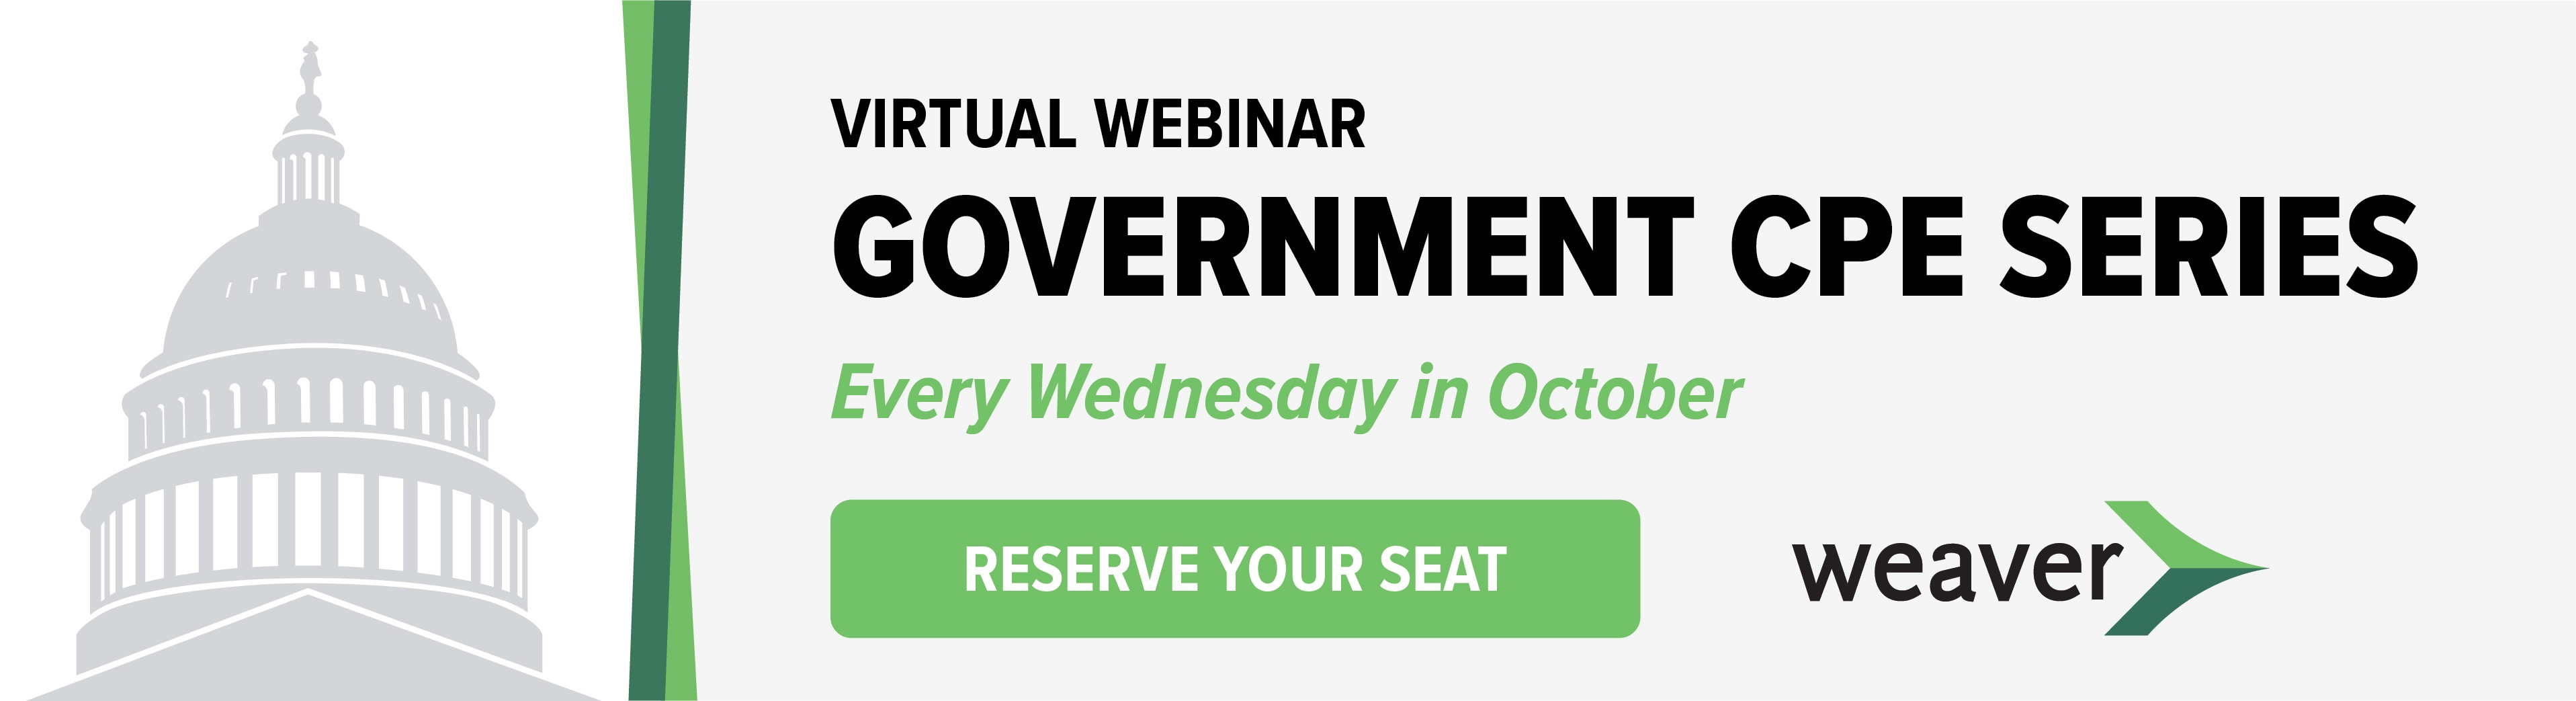 Reserve Your Seat: Government CPE Series